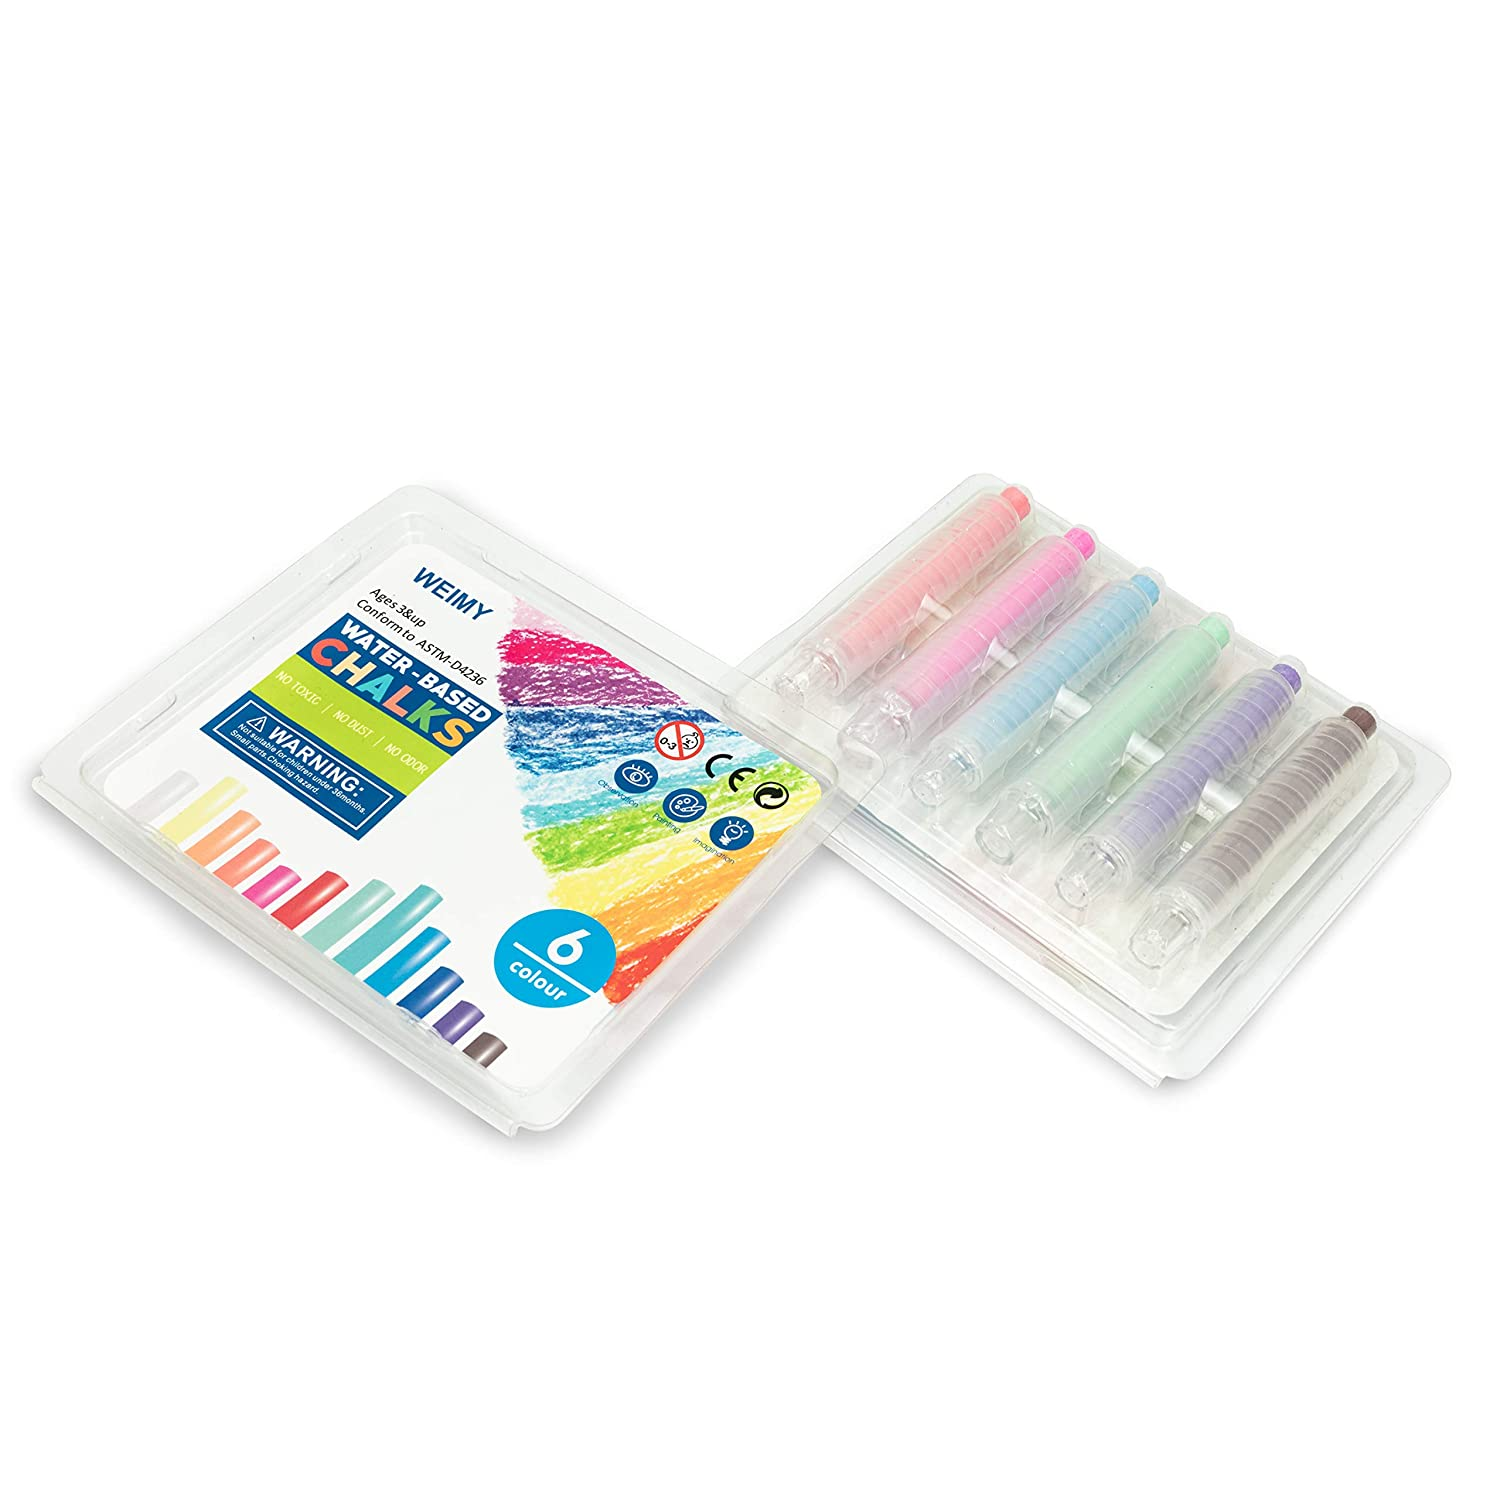 12 colorful WEIMY Dustless Twistable Chalk Non-Toxic Colored Chalk 1.0mm Tip Art Tool for Teachers Kids School Office Drawing Board